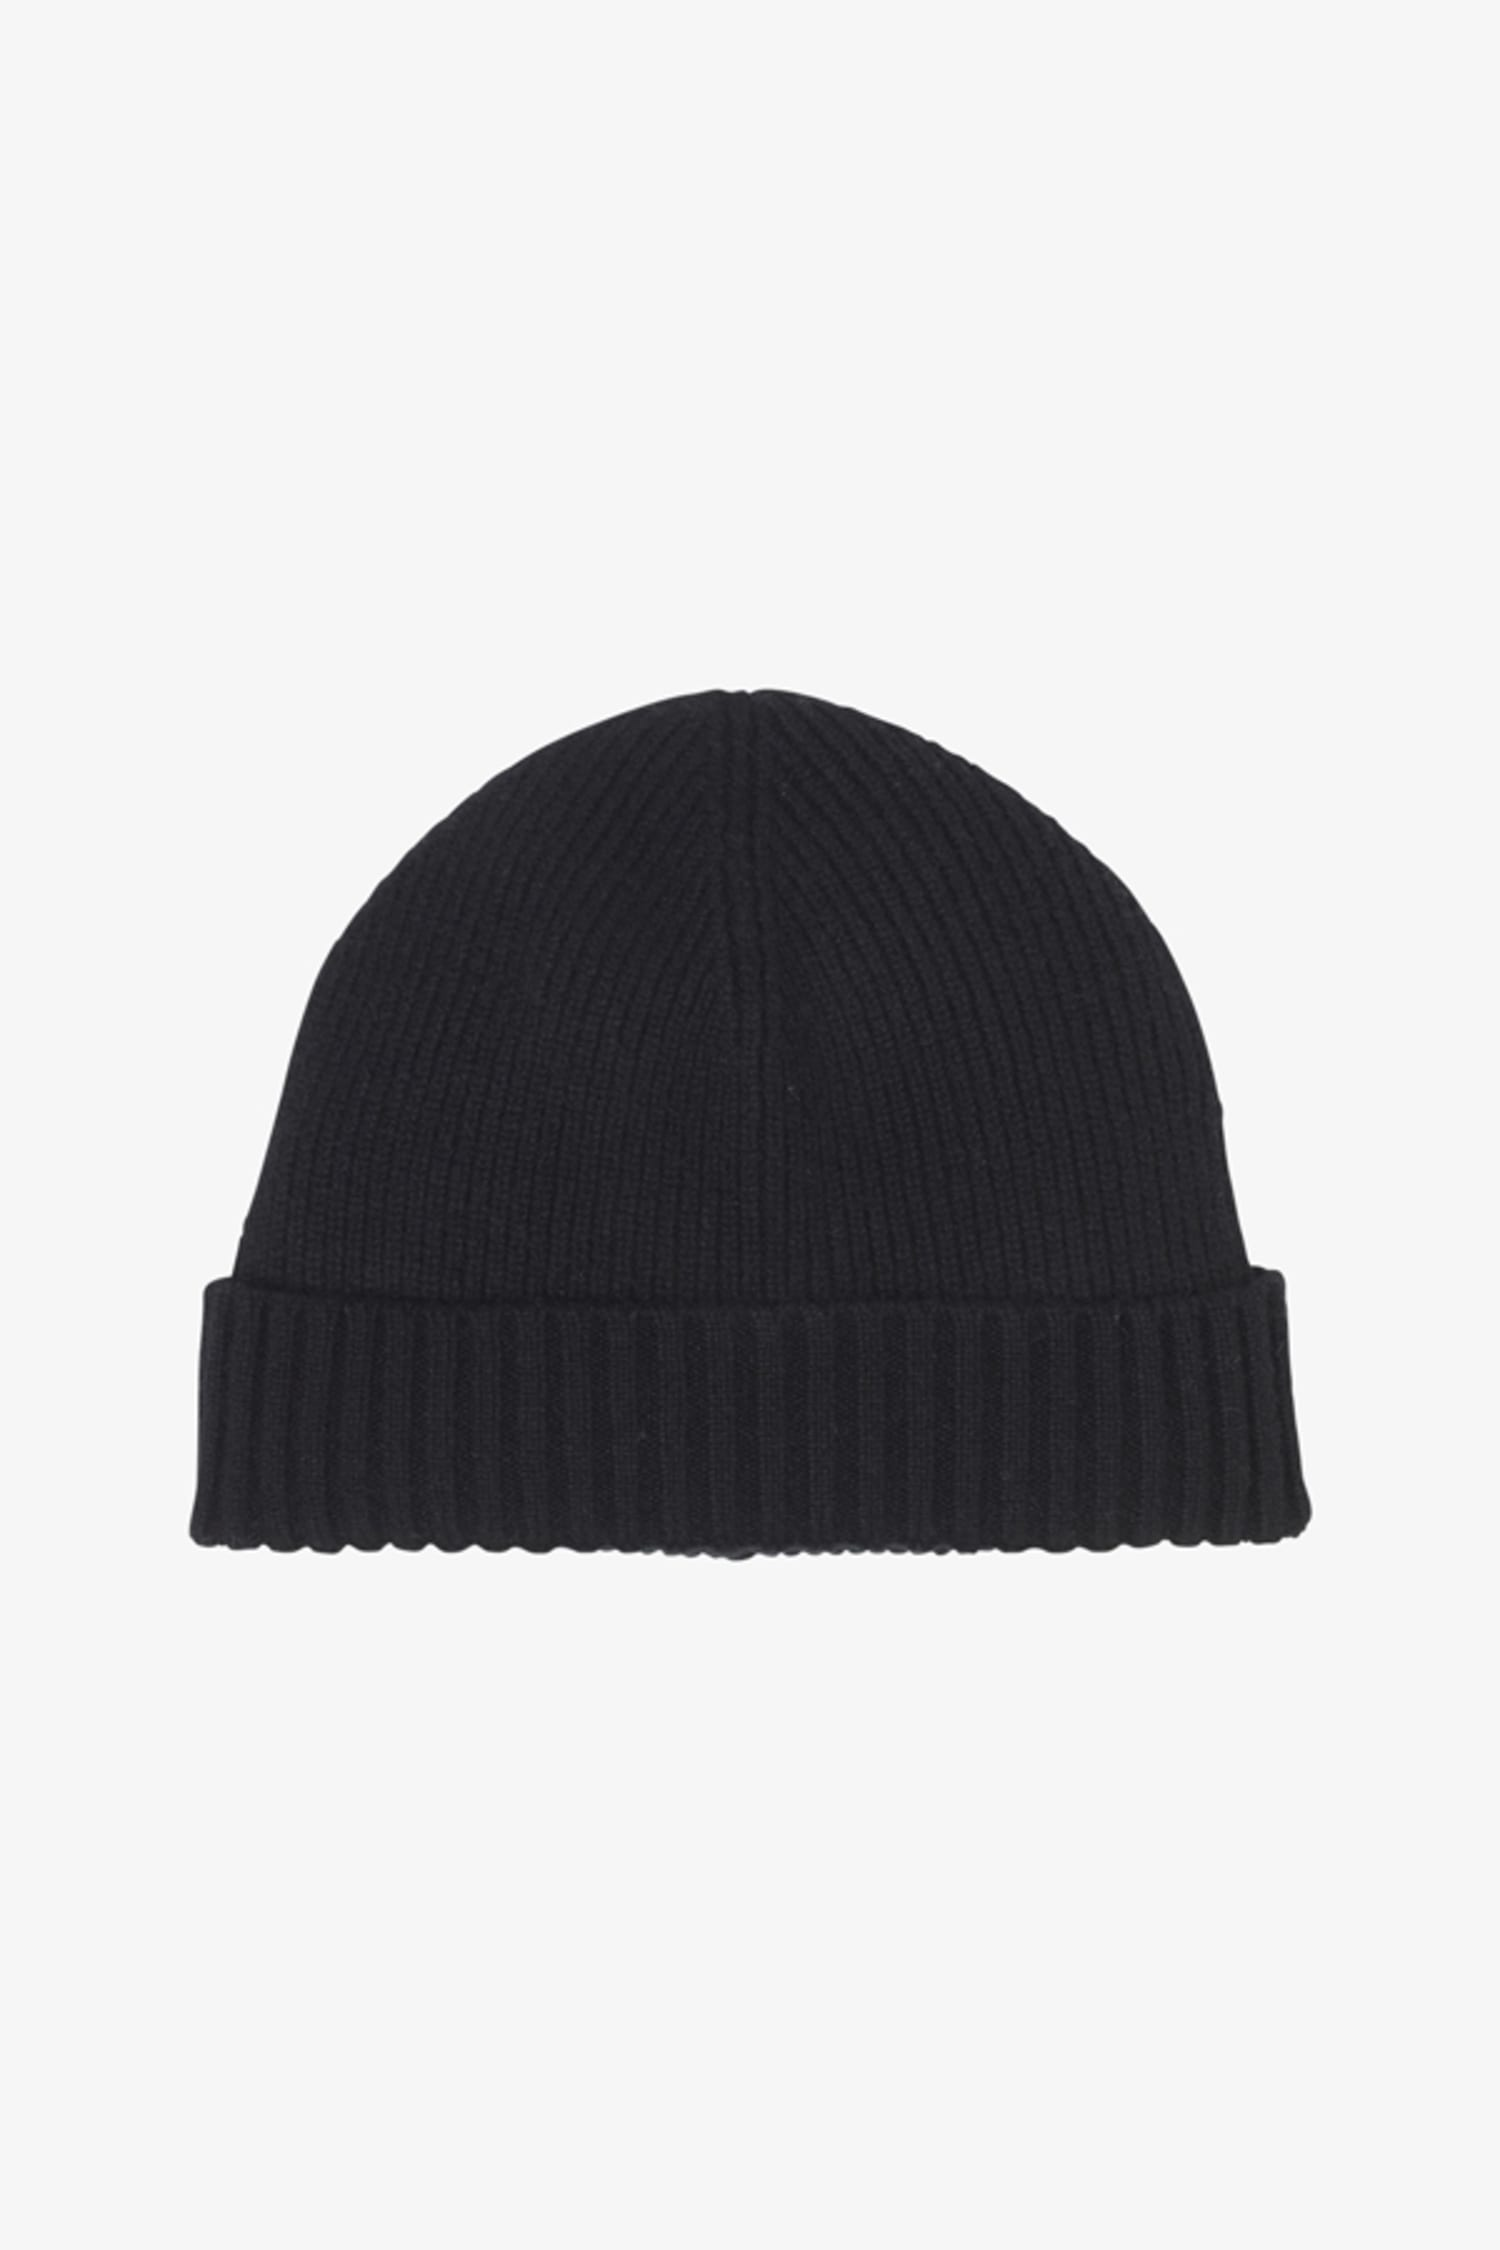 Cashmere Ribbed Hat    Black 1 8bc19df7067